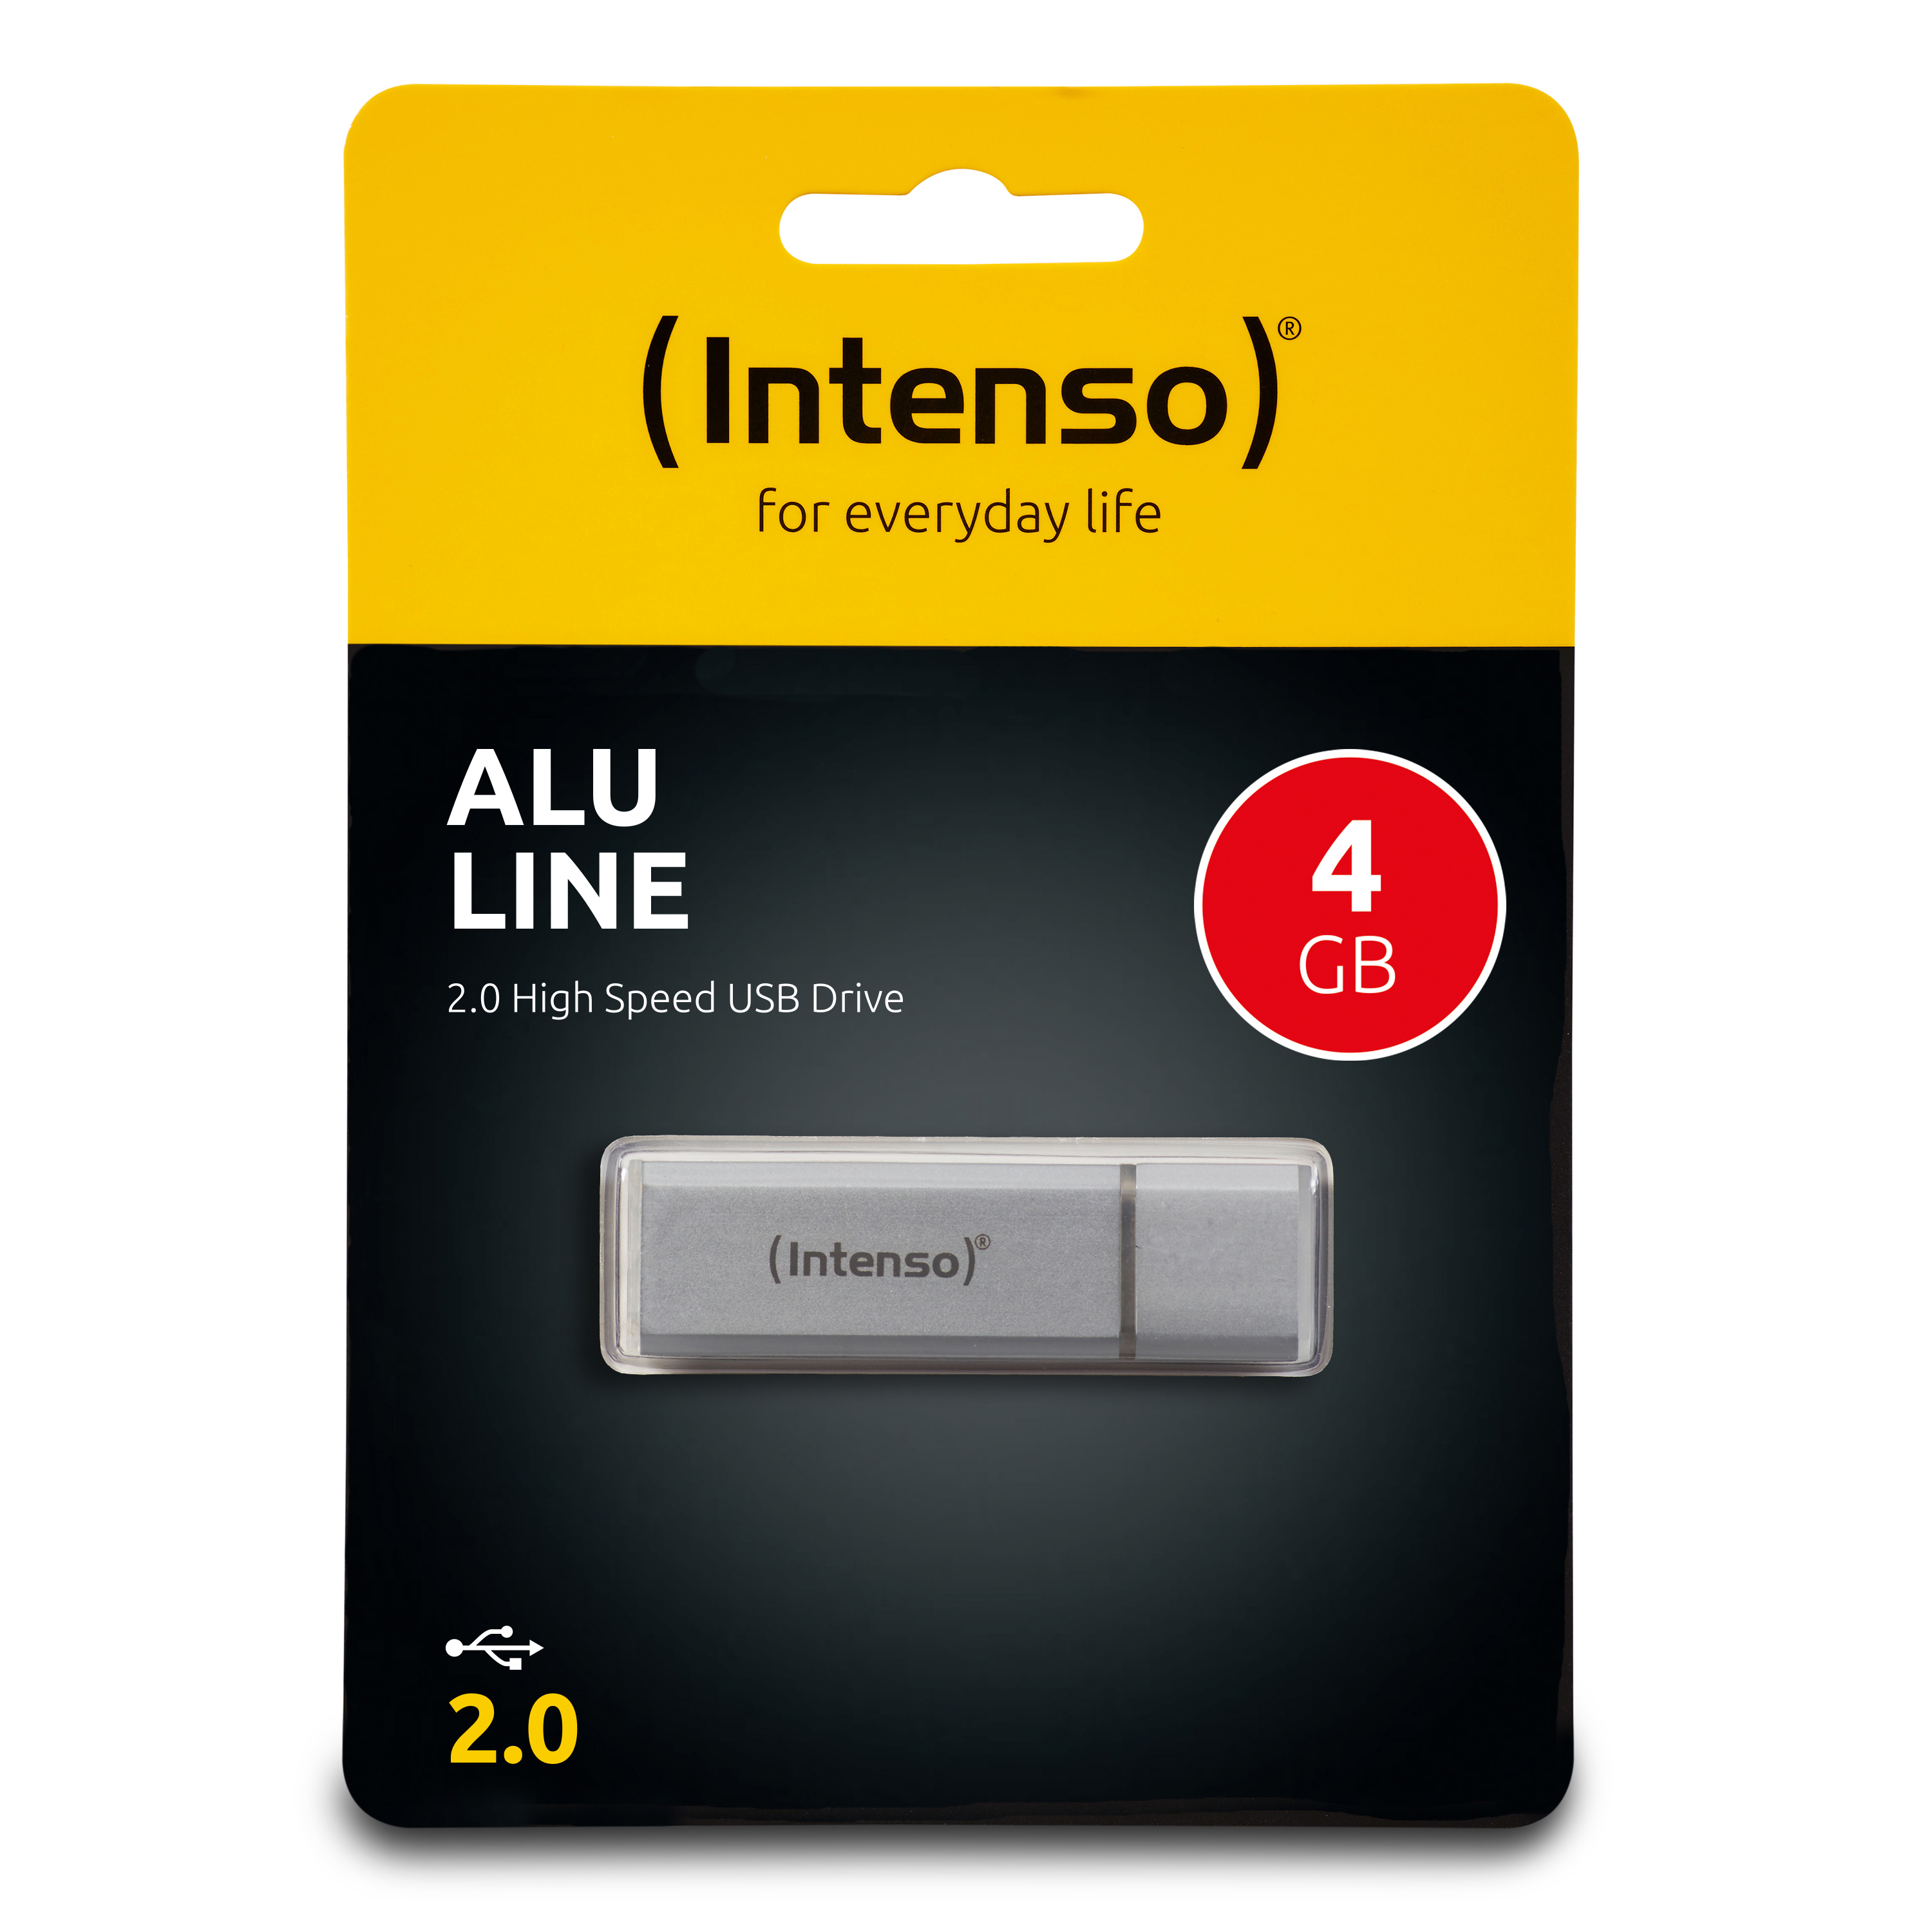 Intenso USB-Stick Alu Line